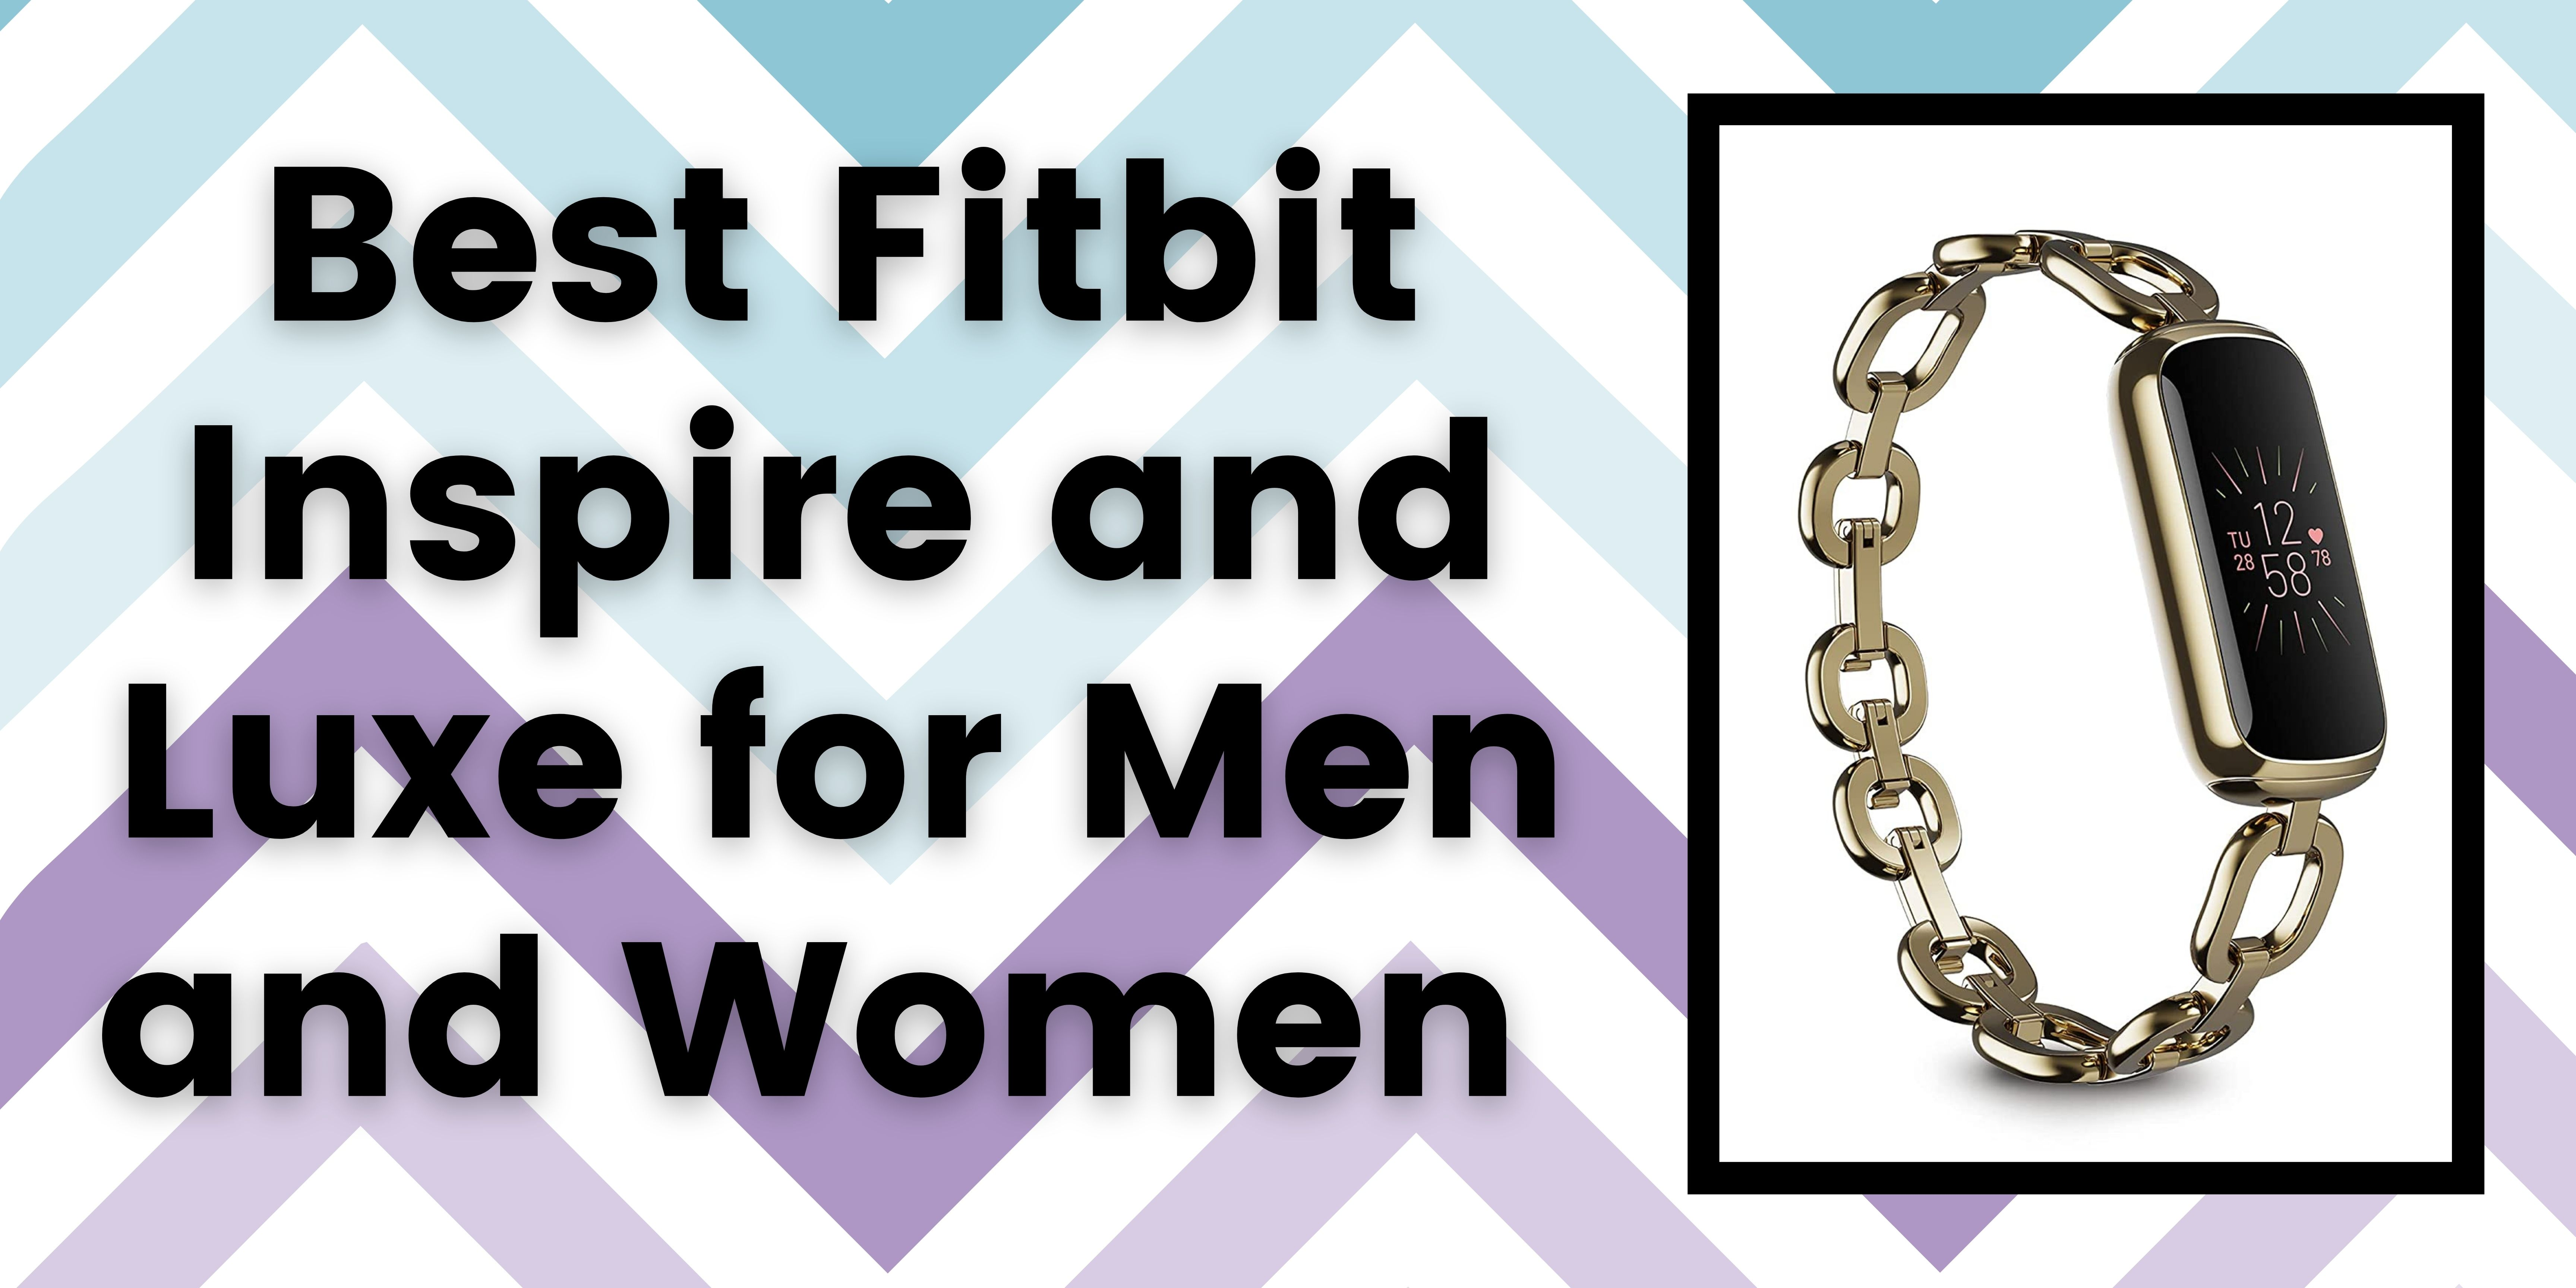 Best Fitbit Inspire and Luxe for Men and Women in 2021